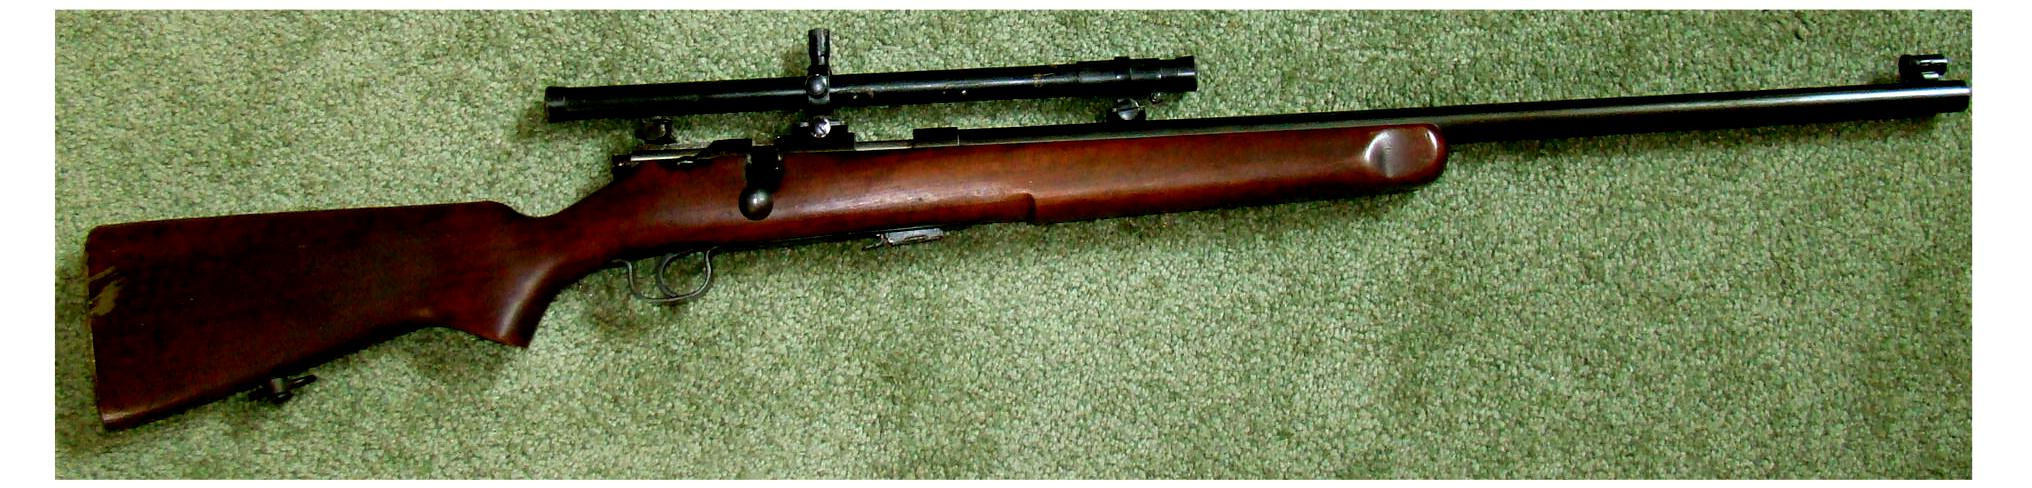 Click image for larger version.  Name:gun pic's (14).JPG Views:26 Size:201.5 KB ID:369427